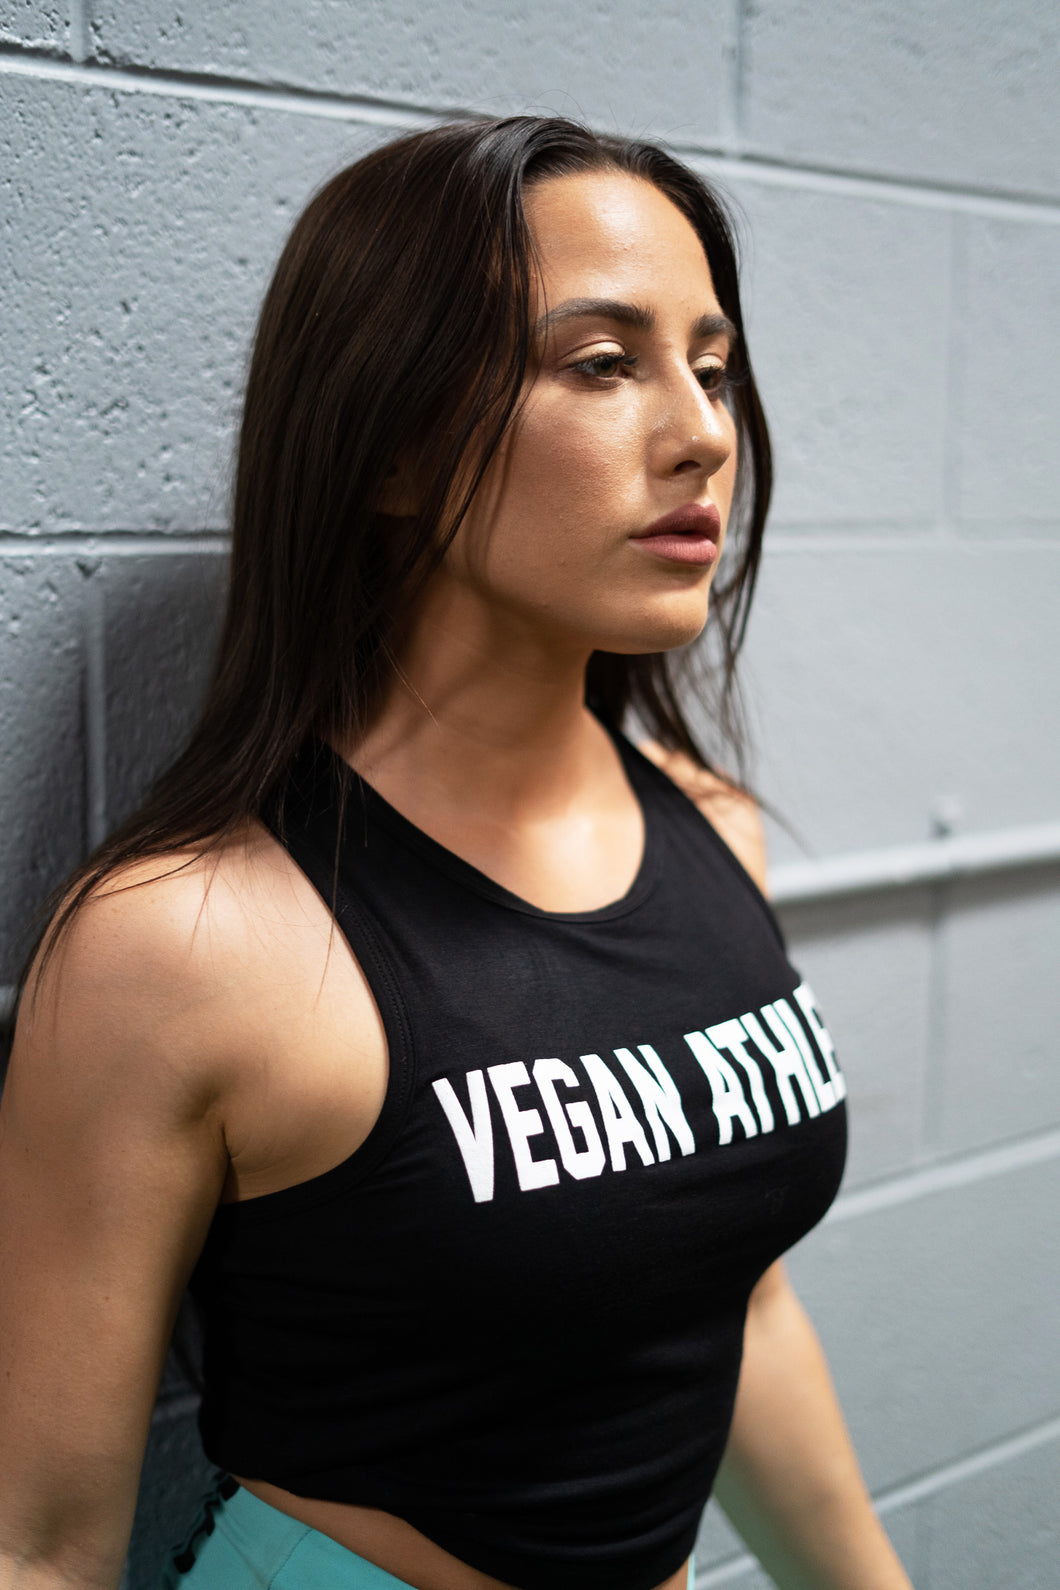 VEGAN ATHLETE TANK TOP